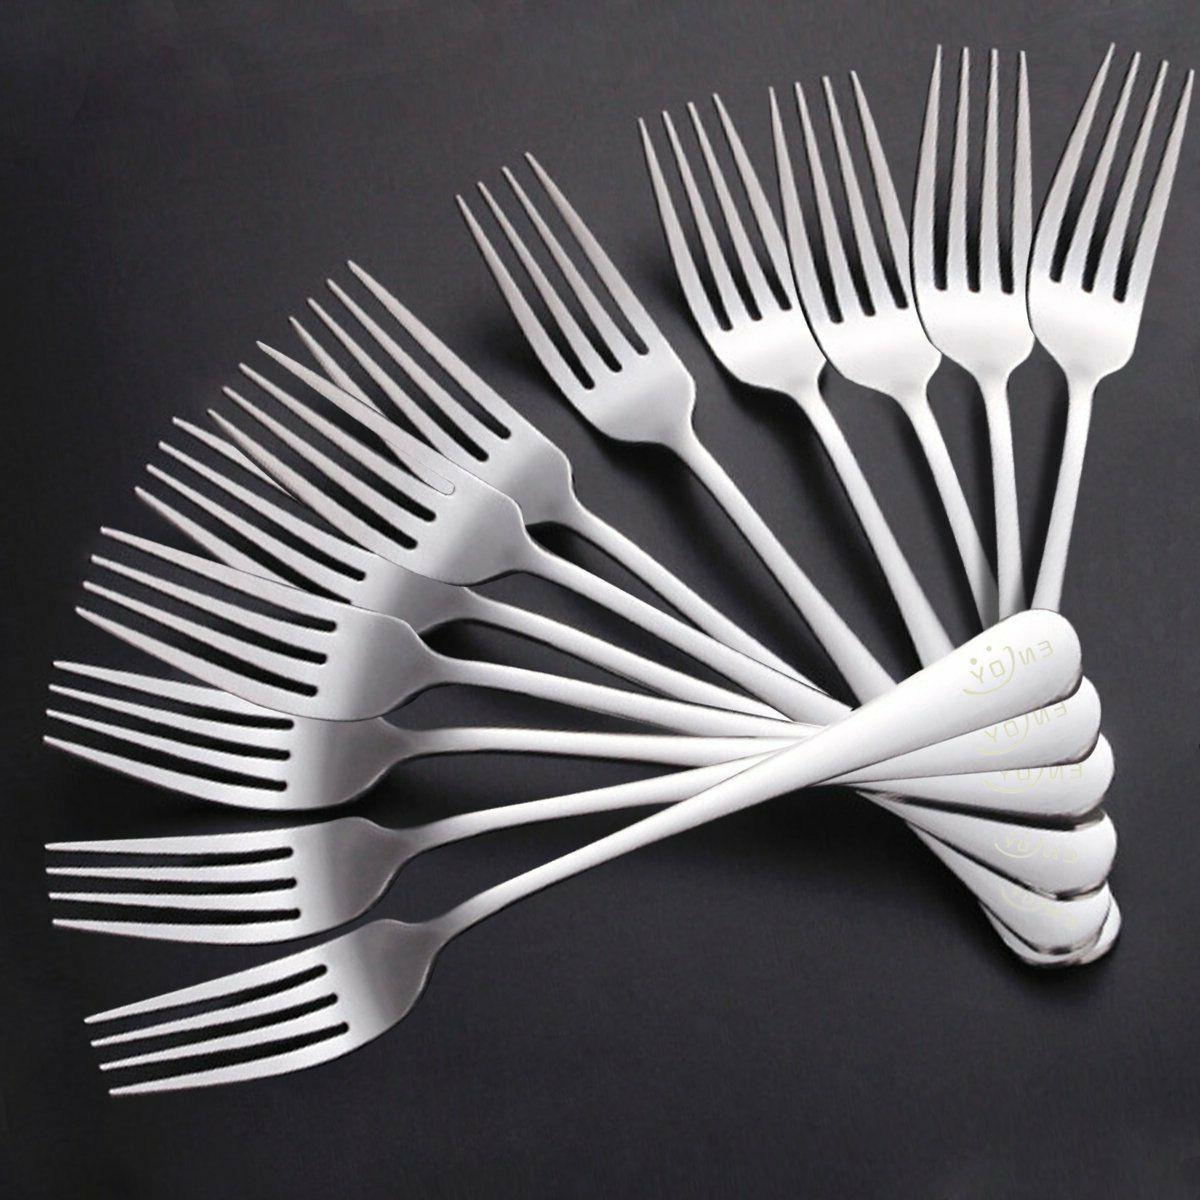 12pcs stainless steel forks dinner silverware polished